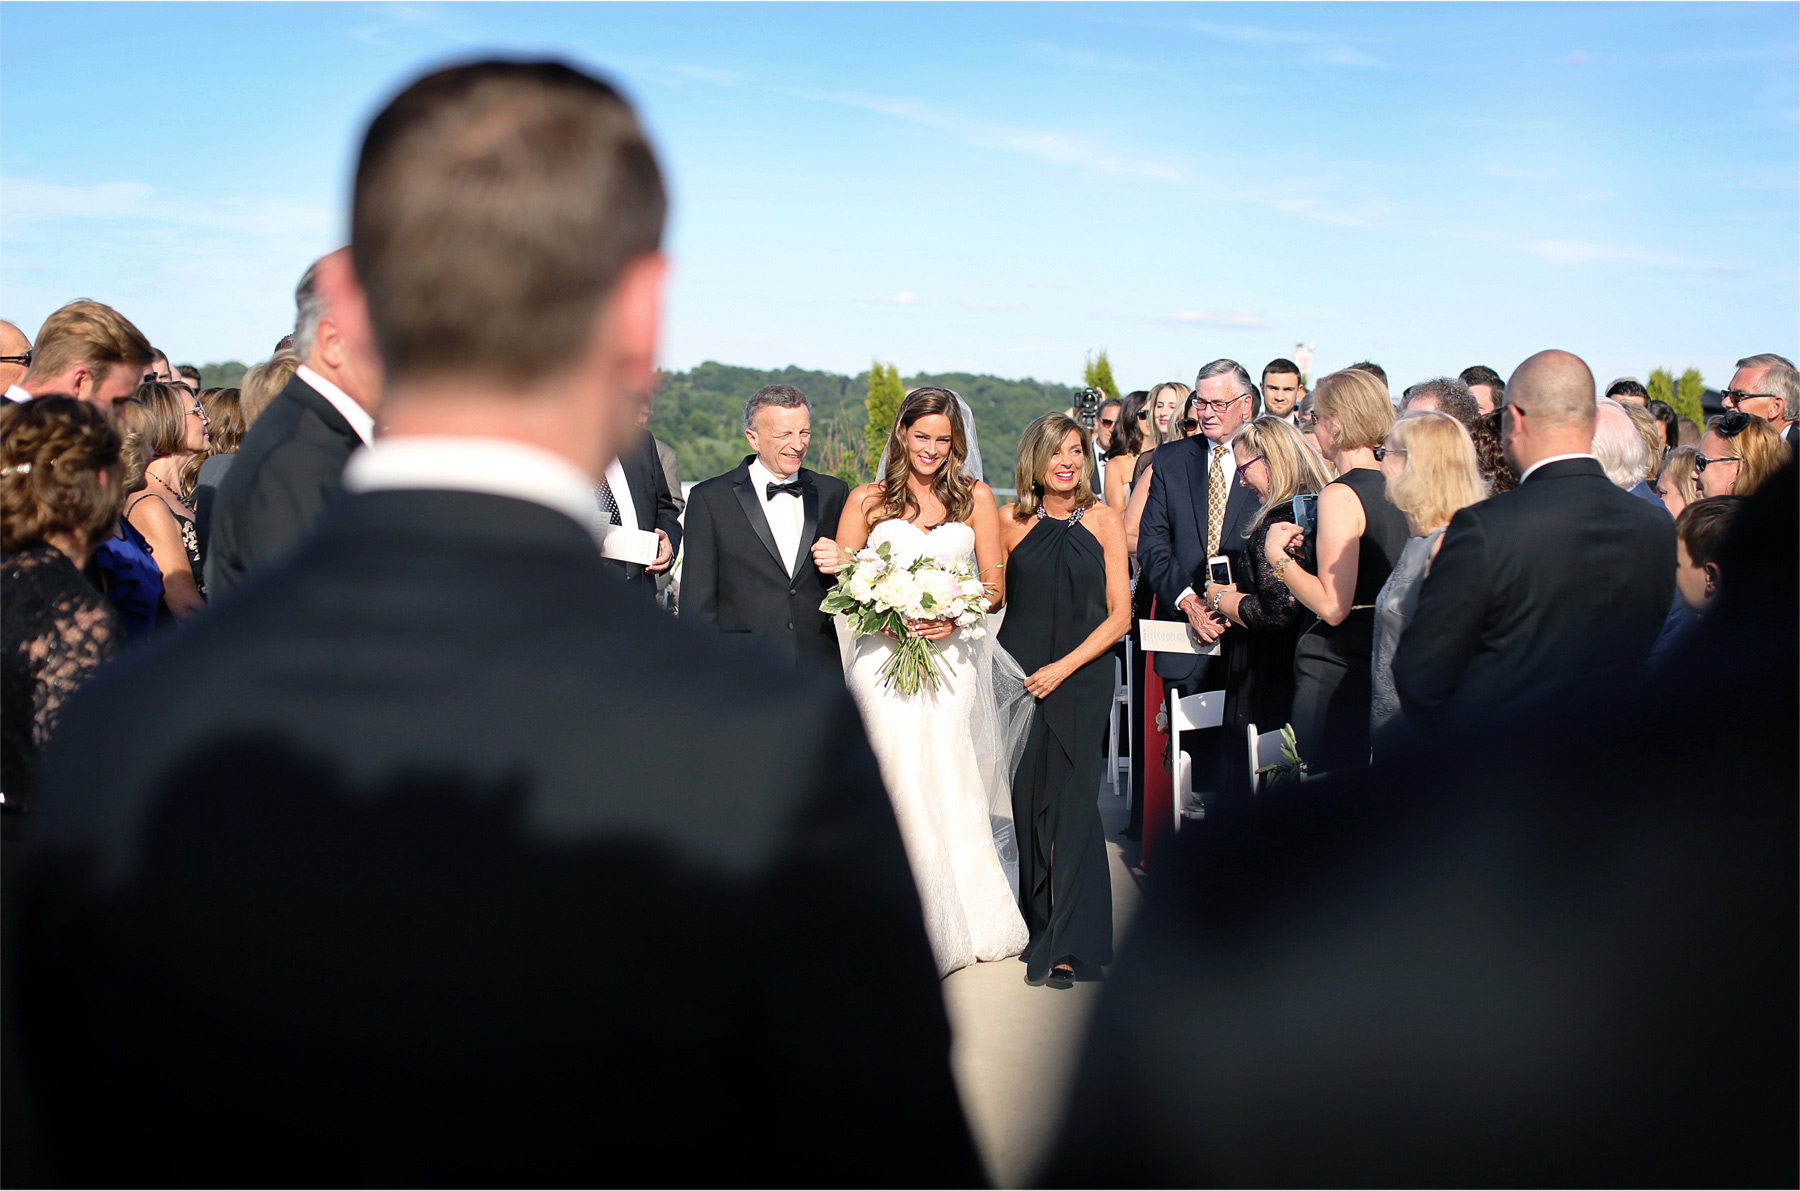 16-Saint-Paul-Minnesota-Wedding-Photographer-by-Andrew-Vick-Photography-Summer-Abulae-Ceremony-Bride-Parents-Mother-Father-Molly-and-Dan.jpg